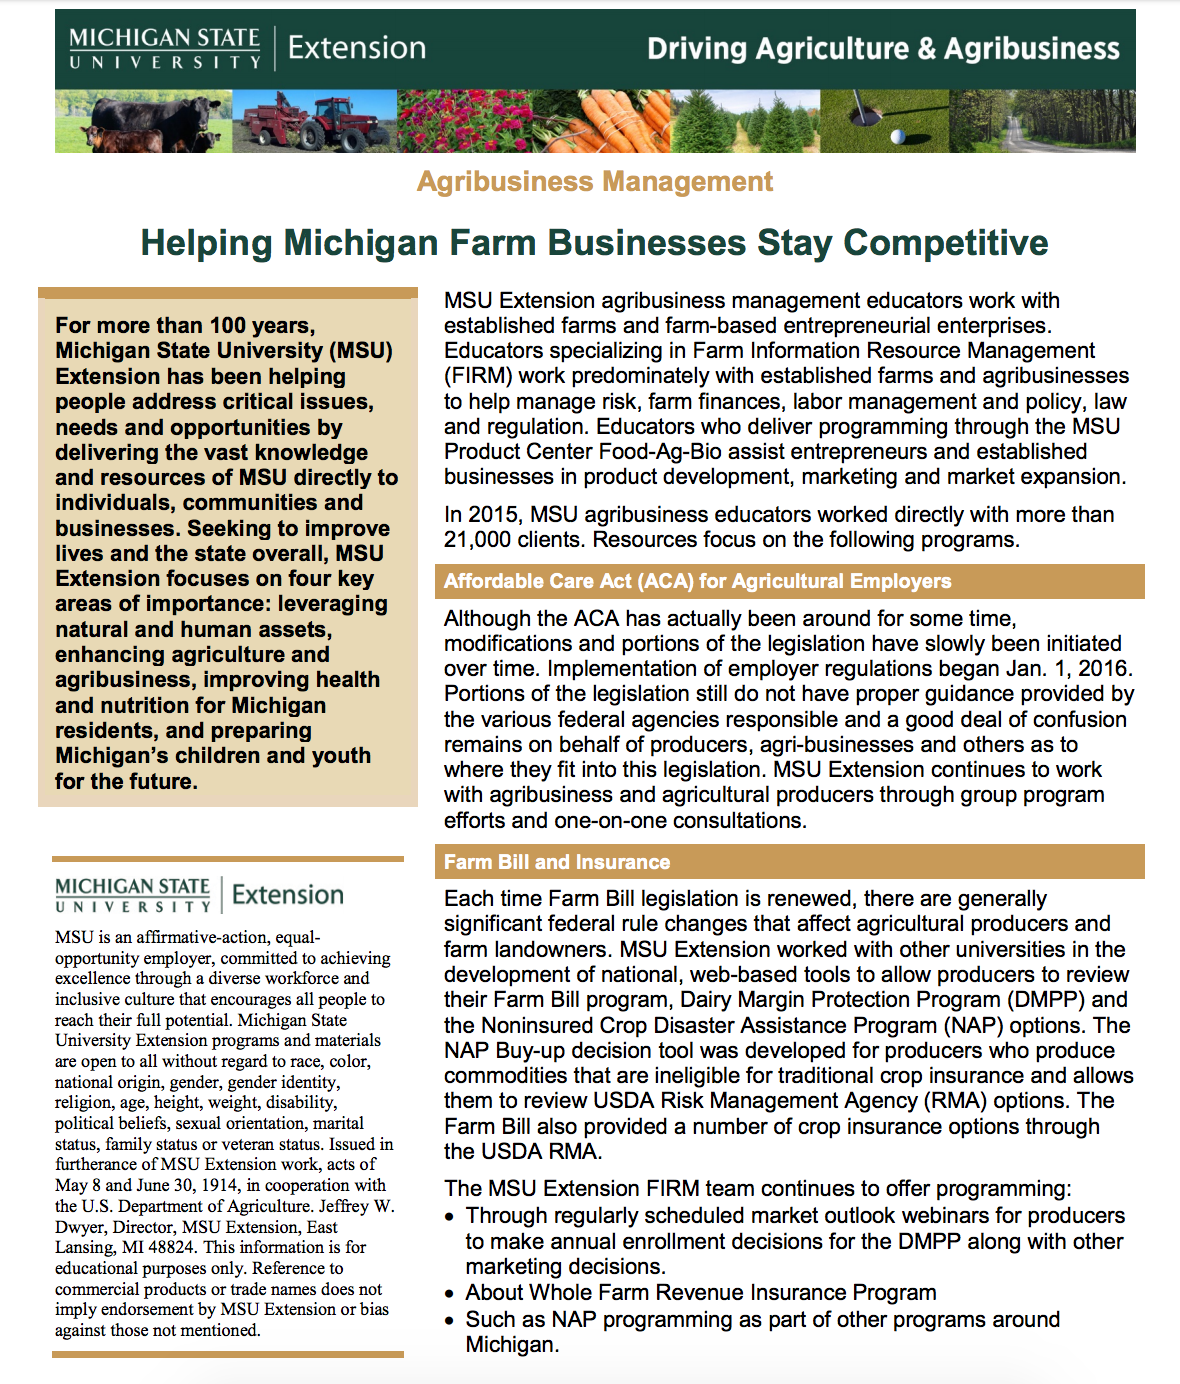 Agribusiness Management: Helping Michigan Farm Businesses Stay Competitive